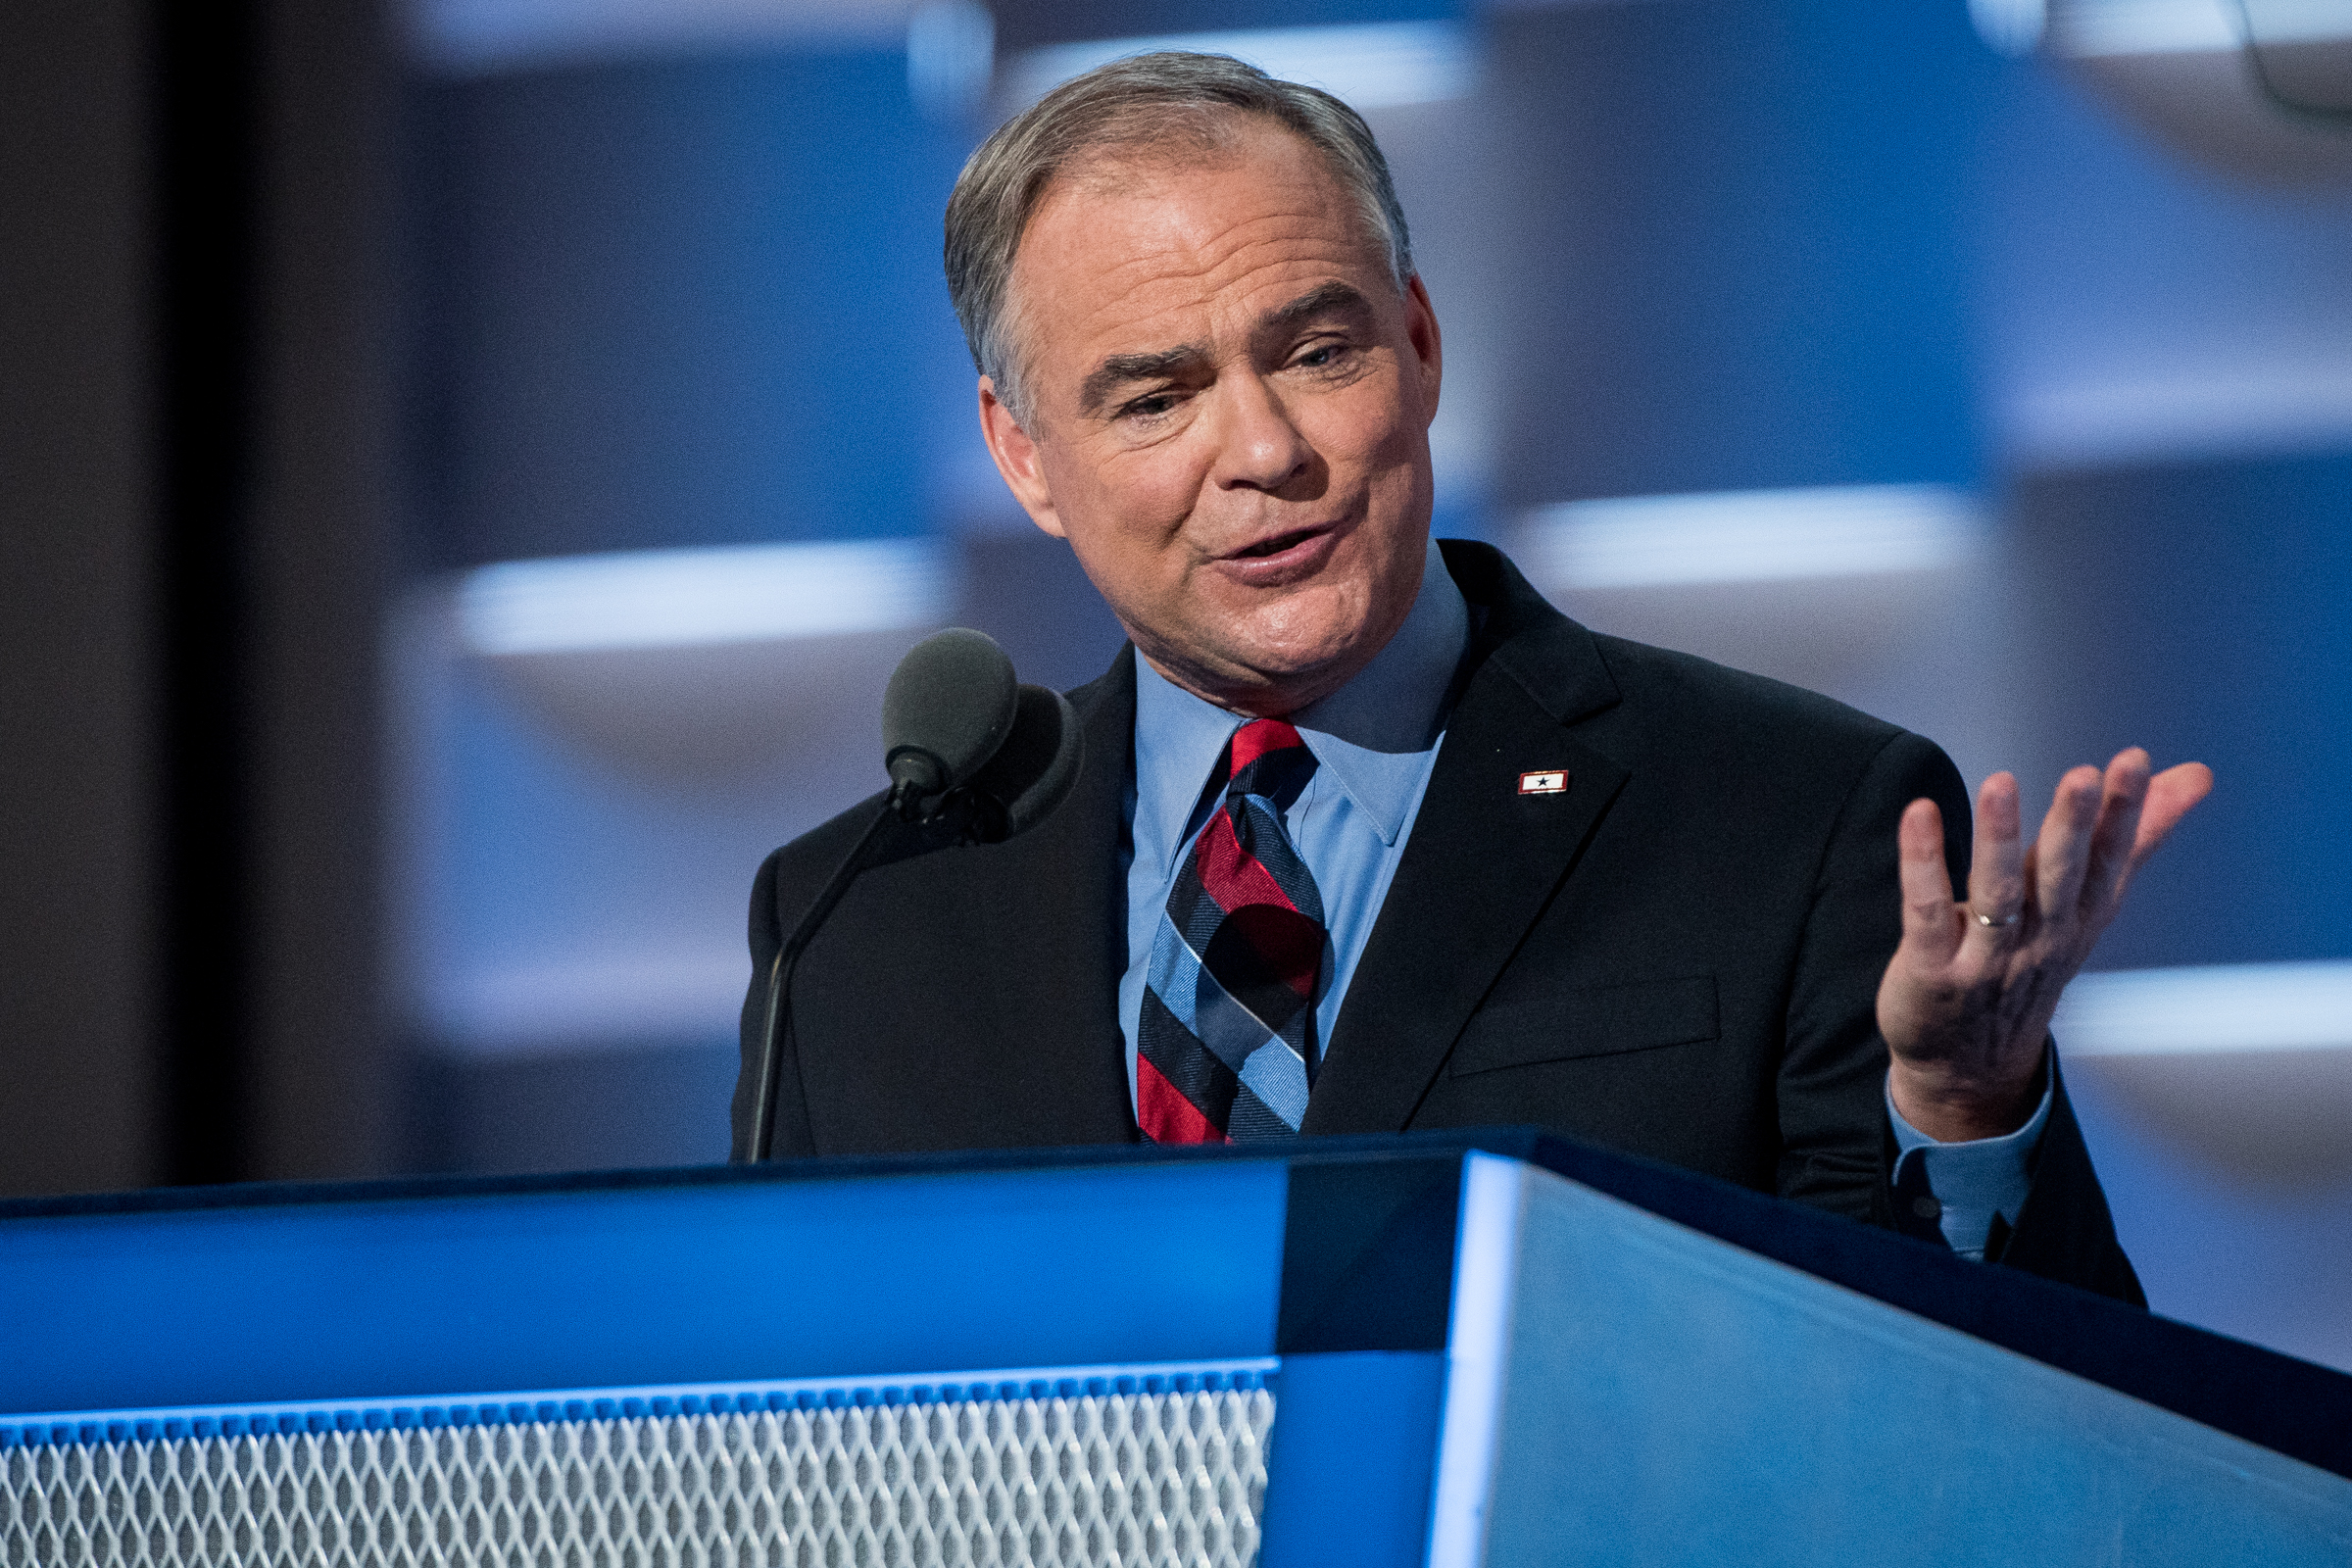 Democratic vice presidential candidate Senator Tim Kaine, D-VA, addresses the delegates at the Democratic National Convention inside the Wells Fargo Center in Philadelphia on Wednesday July 27, 2016. (Michael Ares / Philadelphia Inquirer)